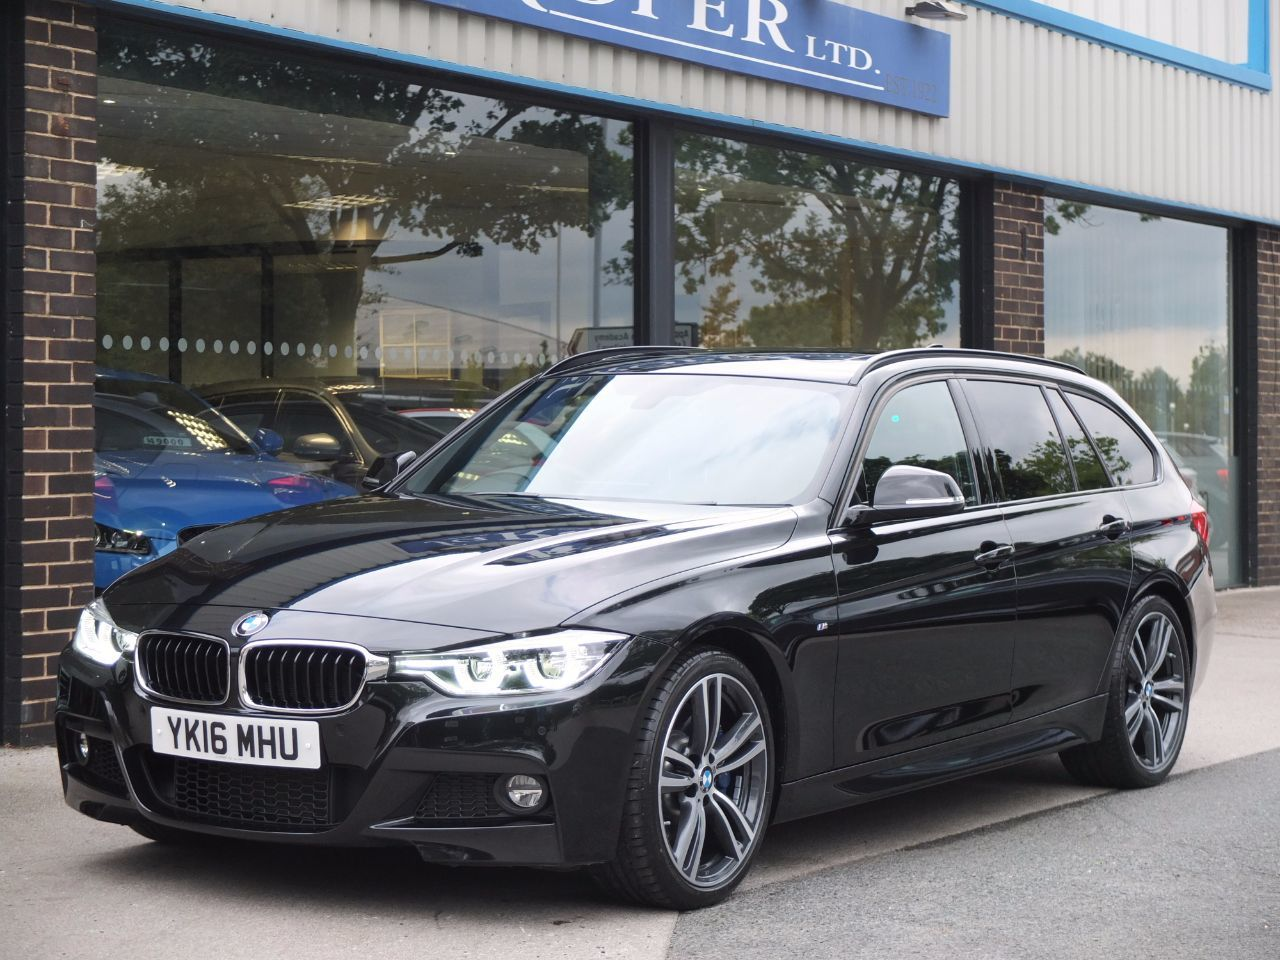 BMW 3 Series 3.0 340i M Sport Plus Pack Touring Auto Estate Petrol Black Sapphire MetallicBMW 3 Series 3.0 340i M Sport Plus Pack Touring Auto Estate Petrol Black Sapphire Metallic at fa Roper Ltd Bradford